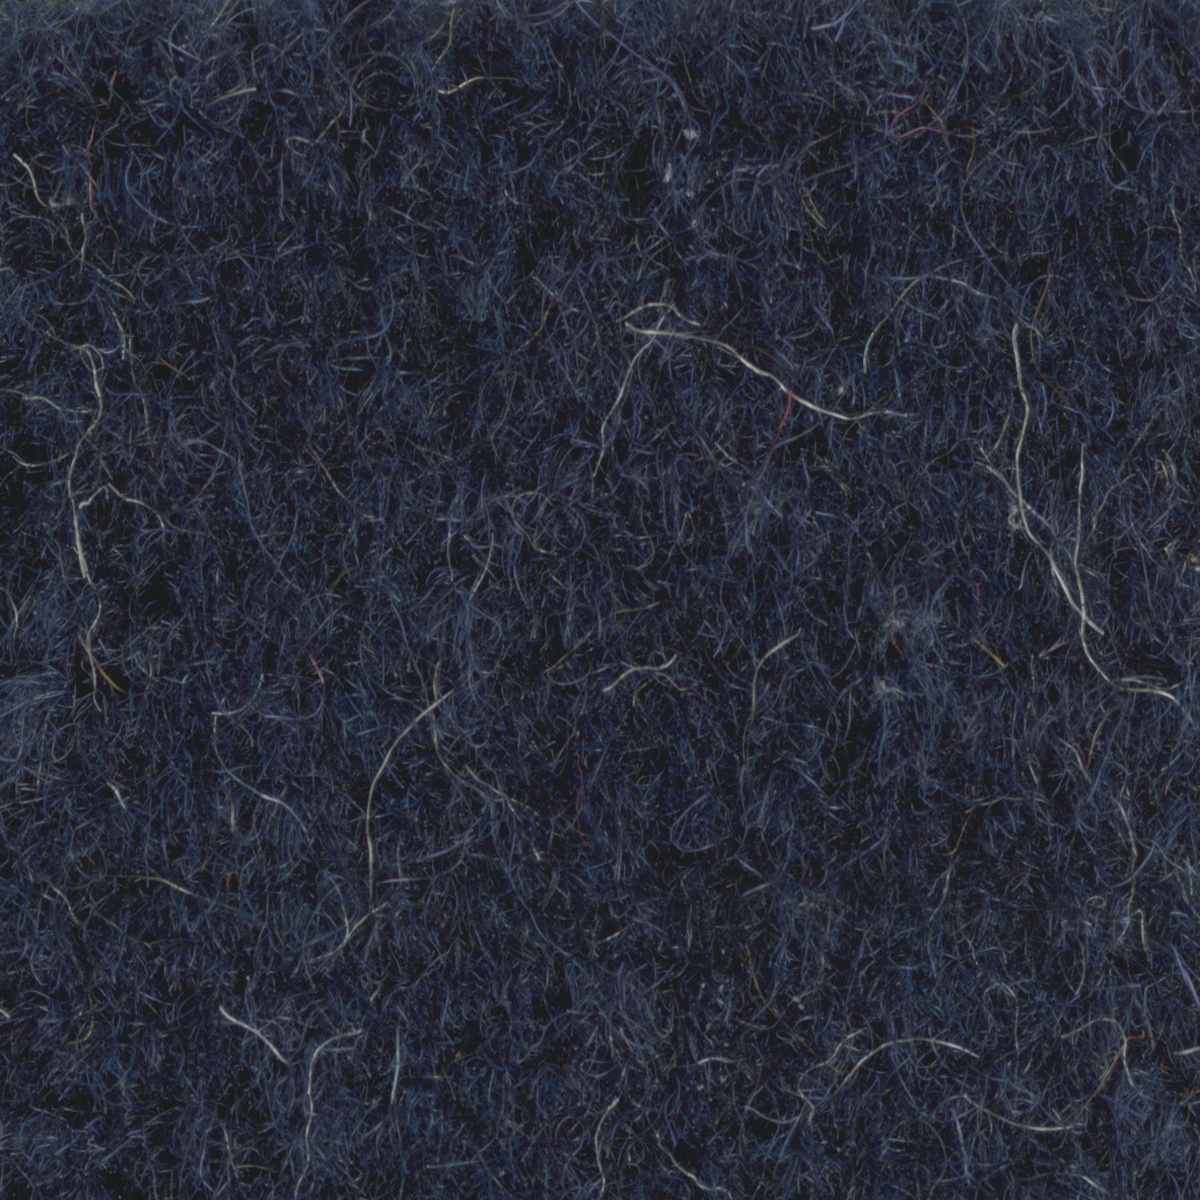 BLUE ENGLISH WILTON II WOOL CARPET